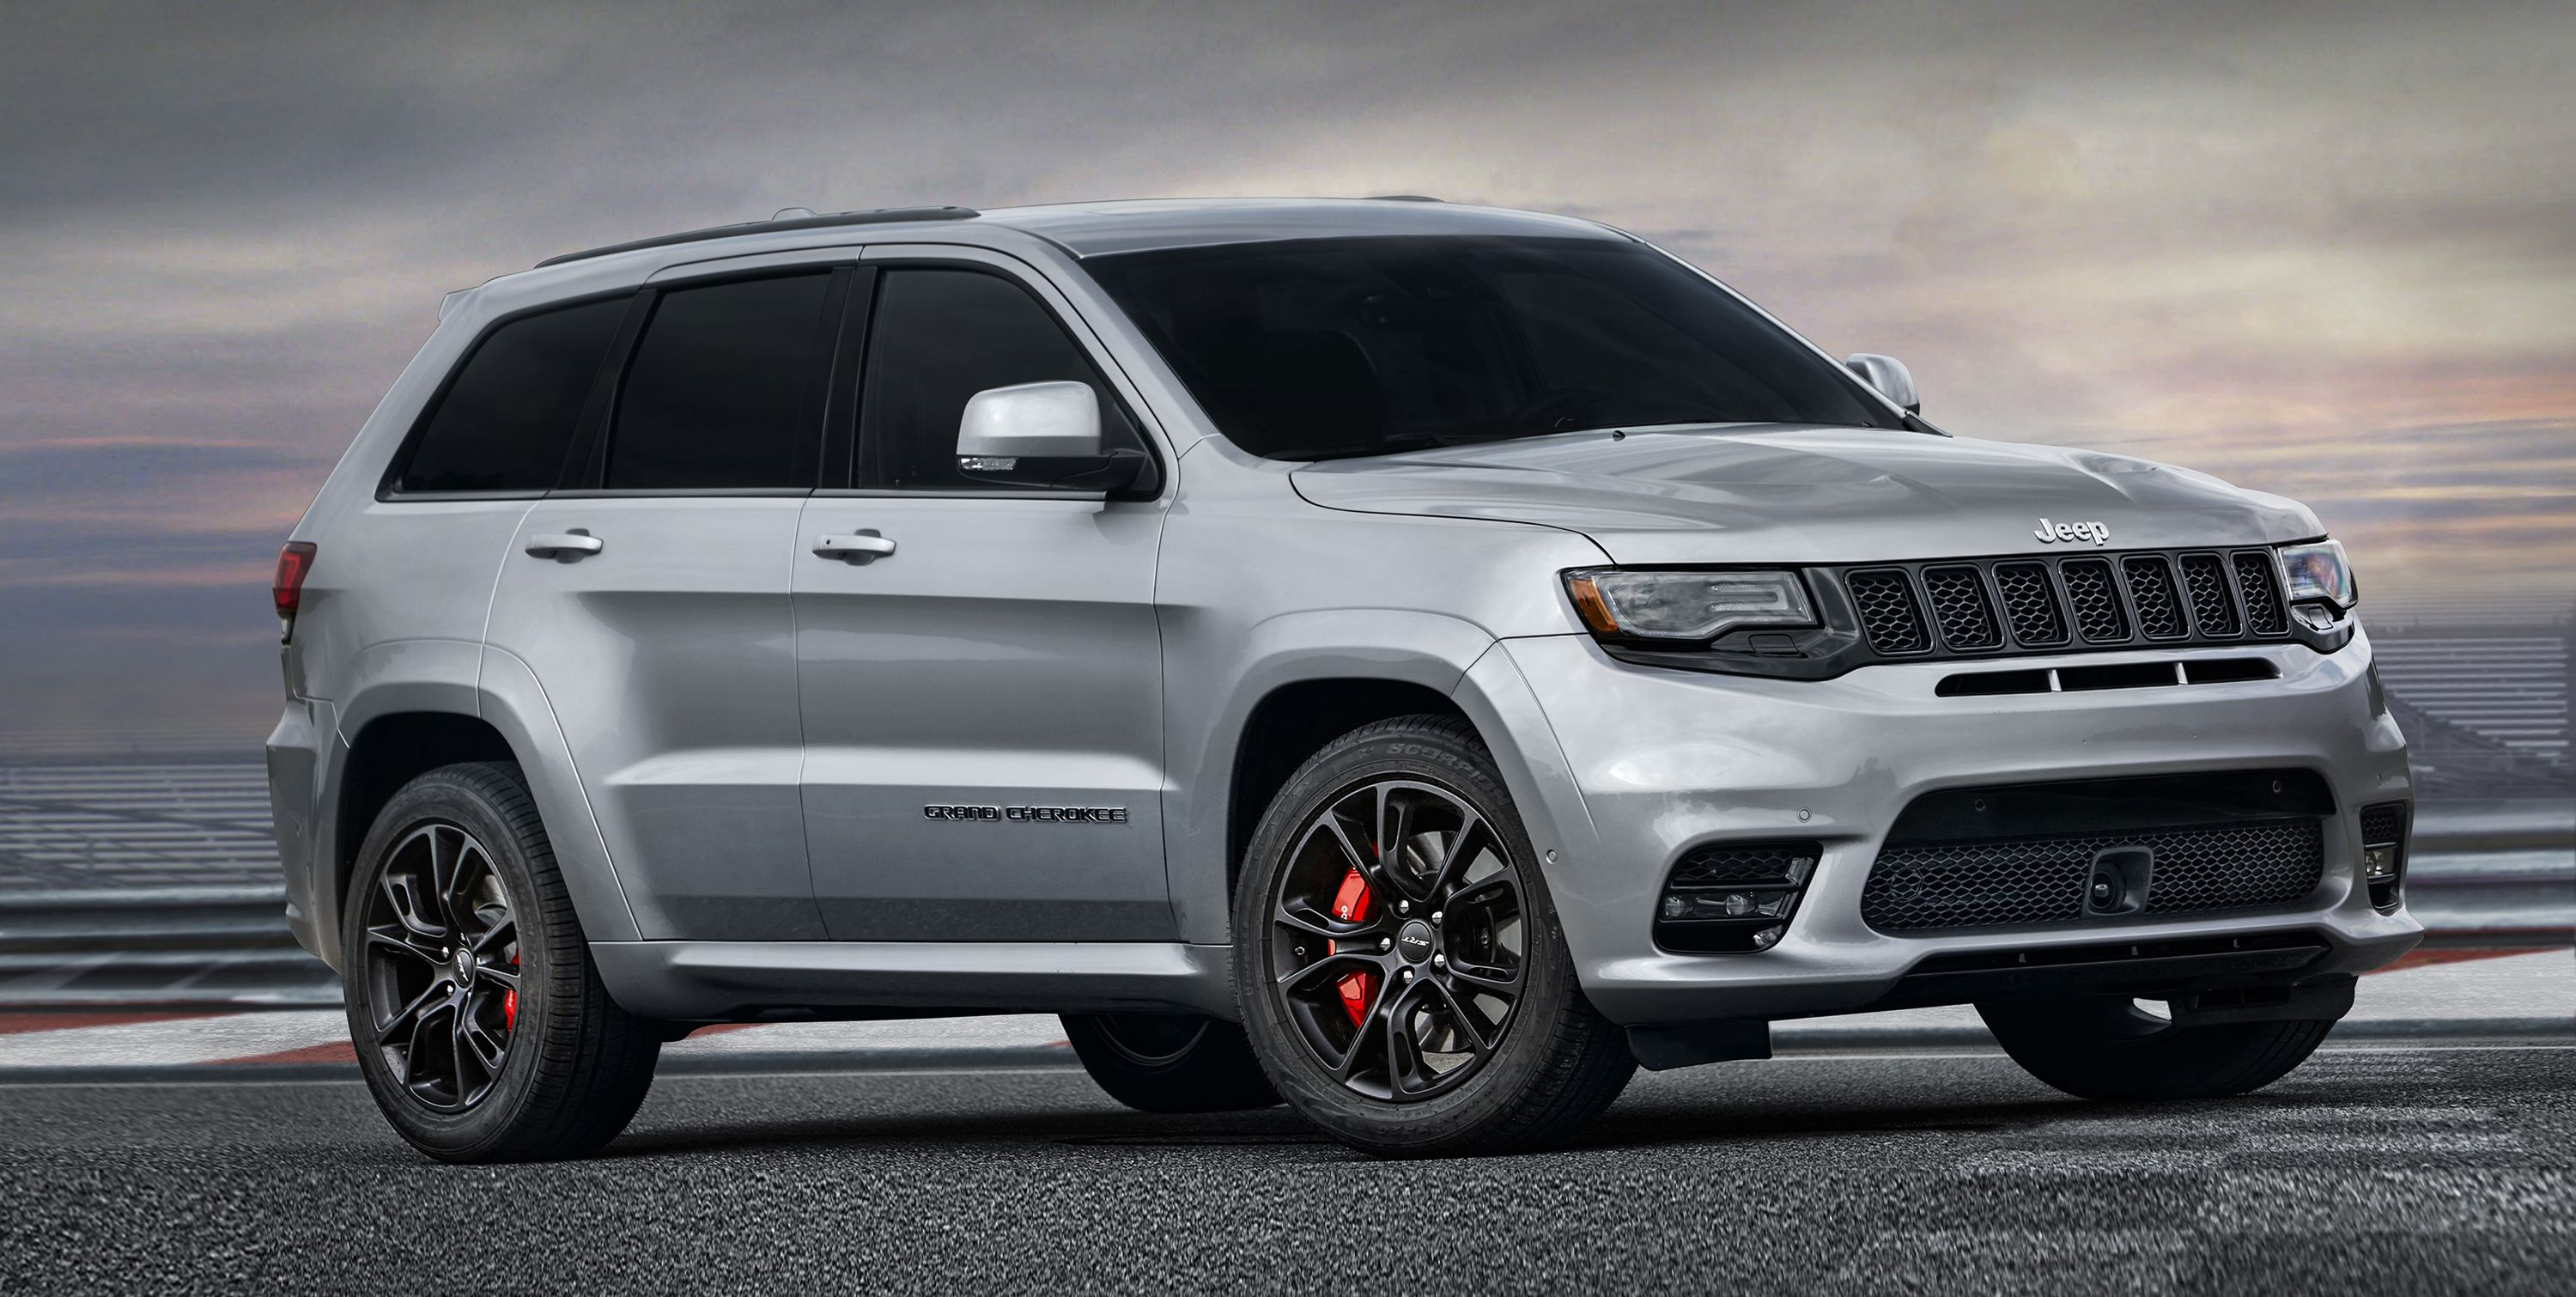 Hellcat Jeep Srt8 Price